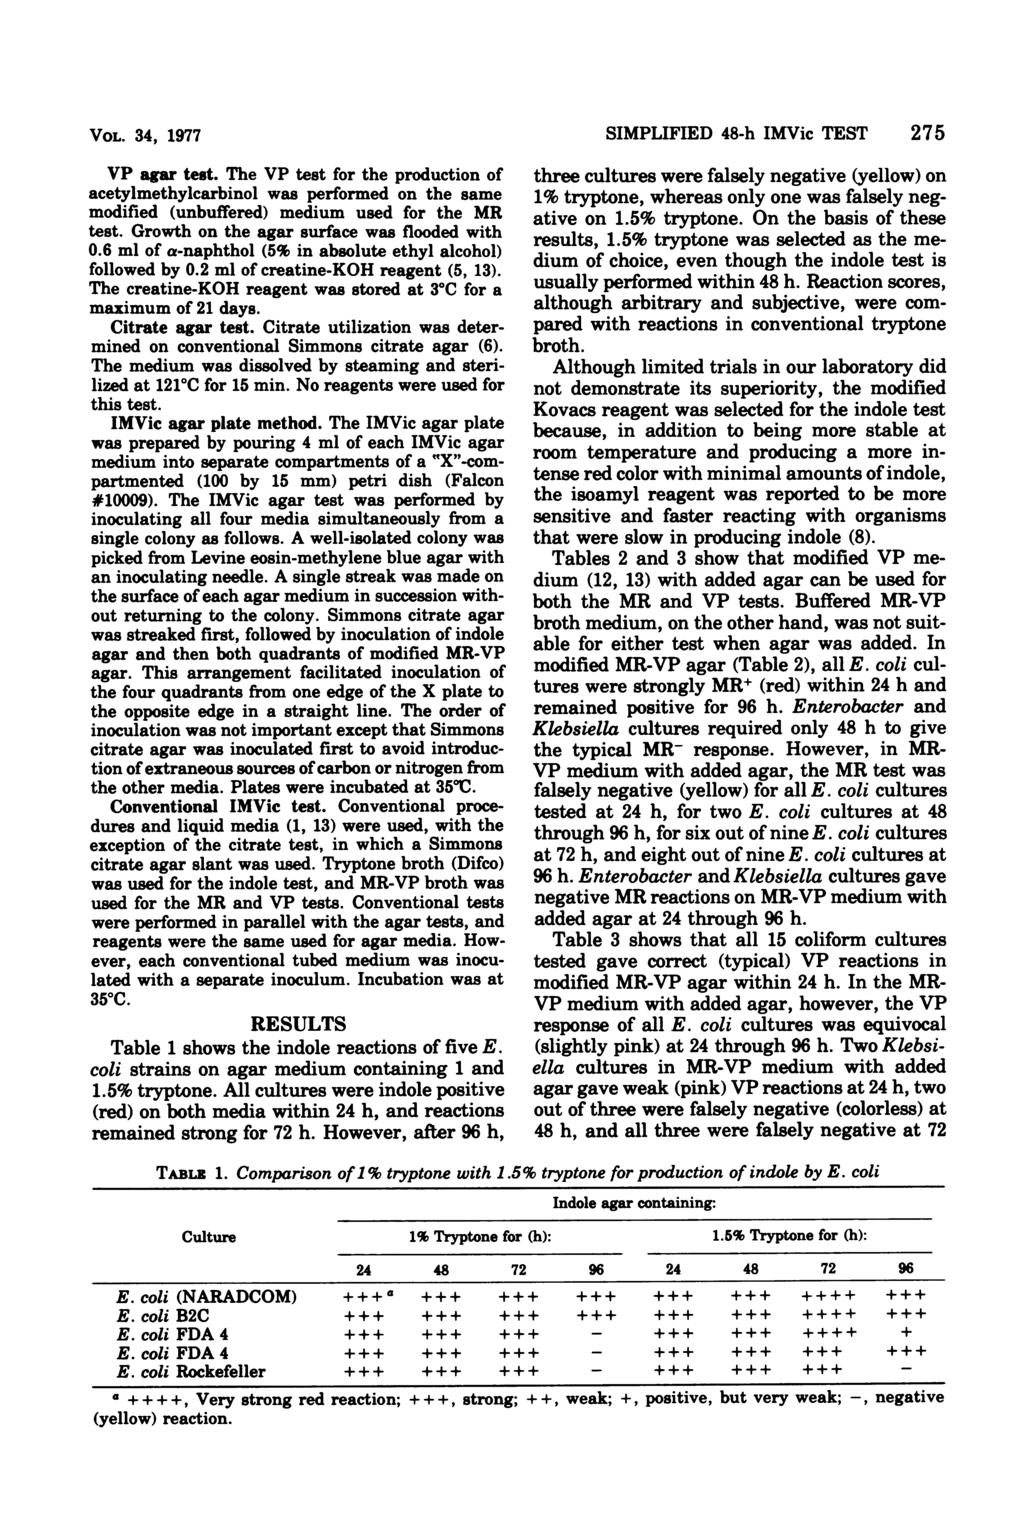 VOL. 34, 1977 VP agar test. The VP test for the production of acetylmethylcarbinol was performed on the same modified (unbuffered) medium used for the MR test.